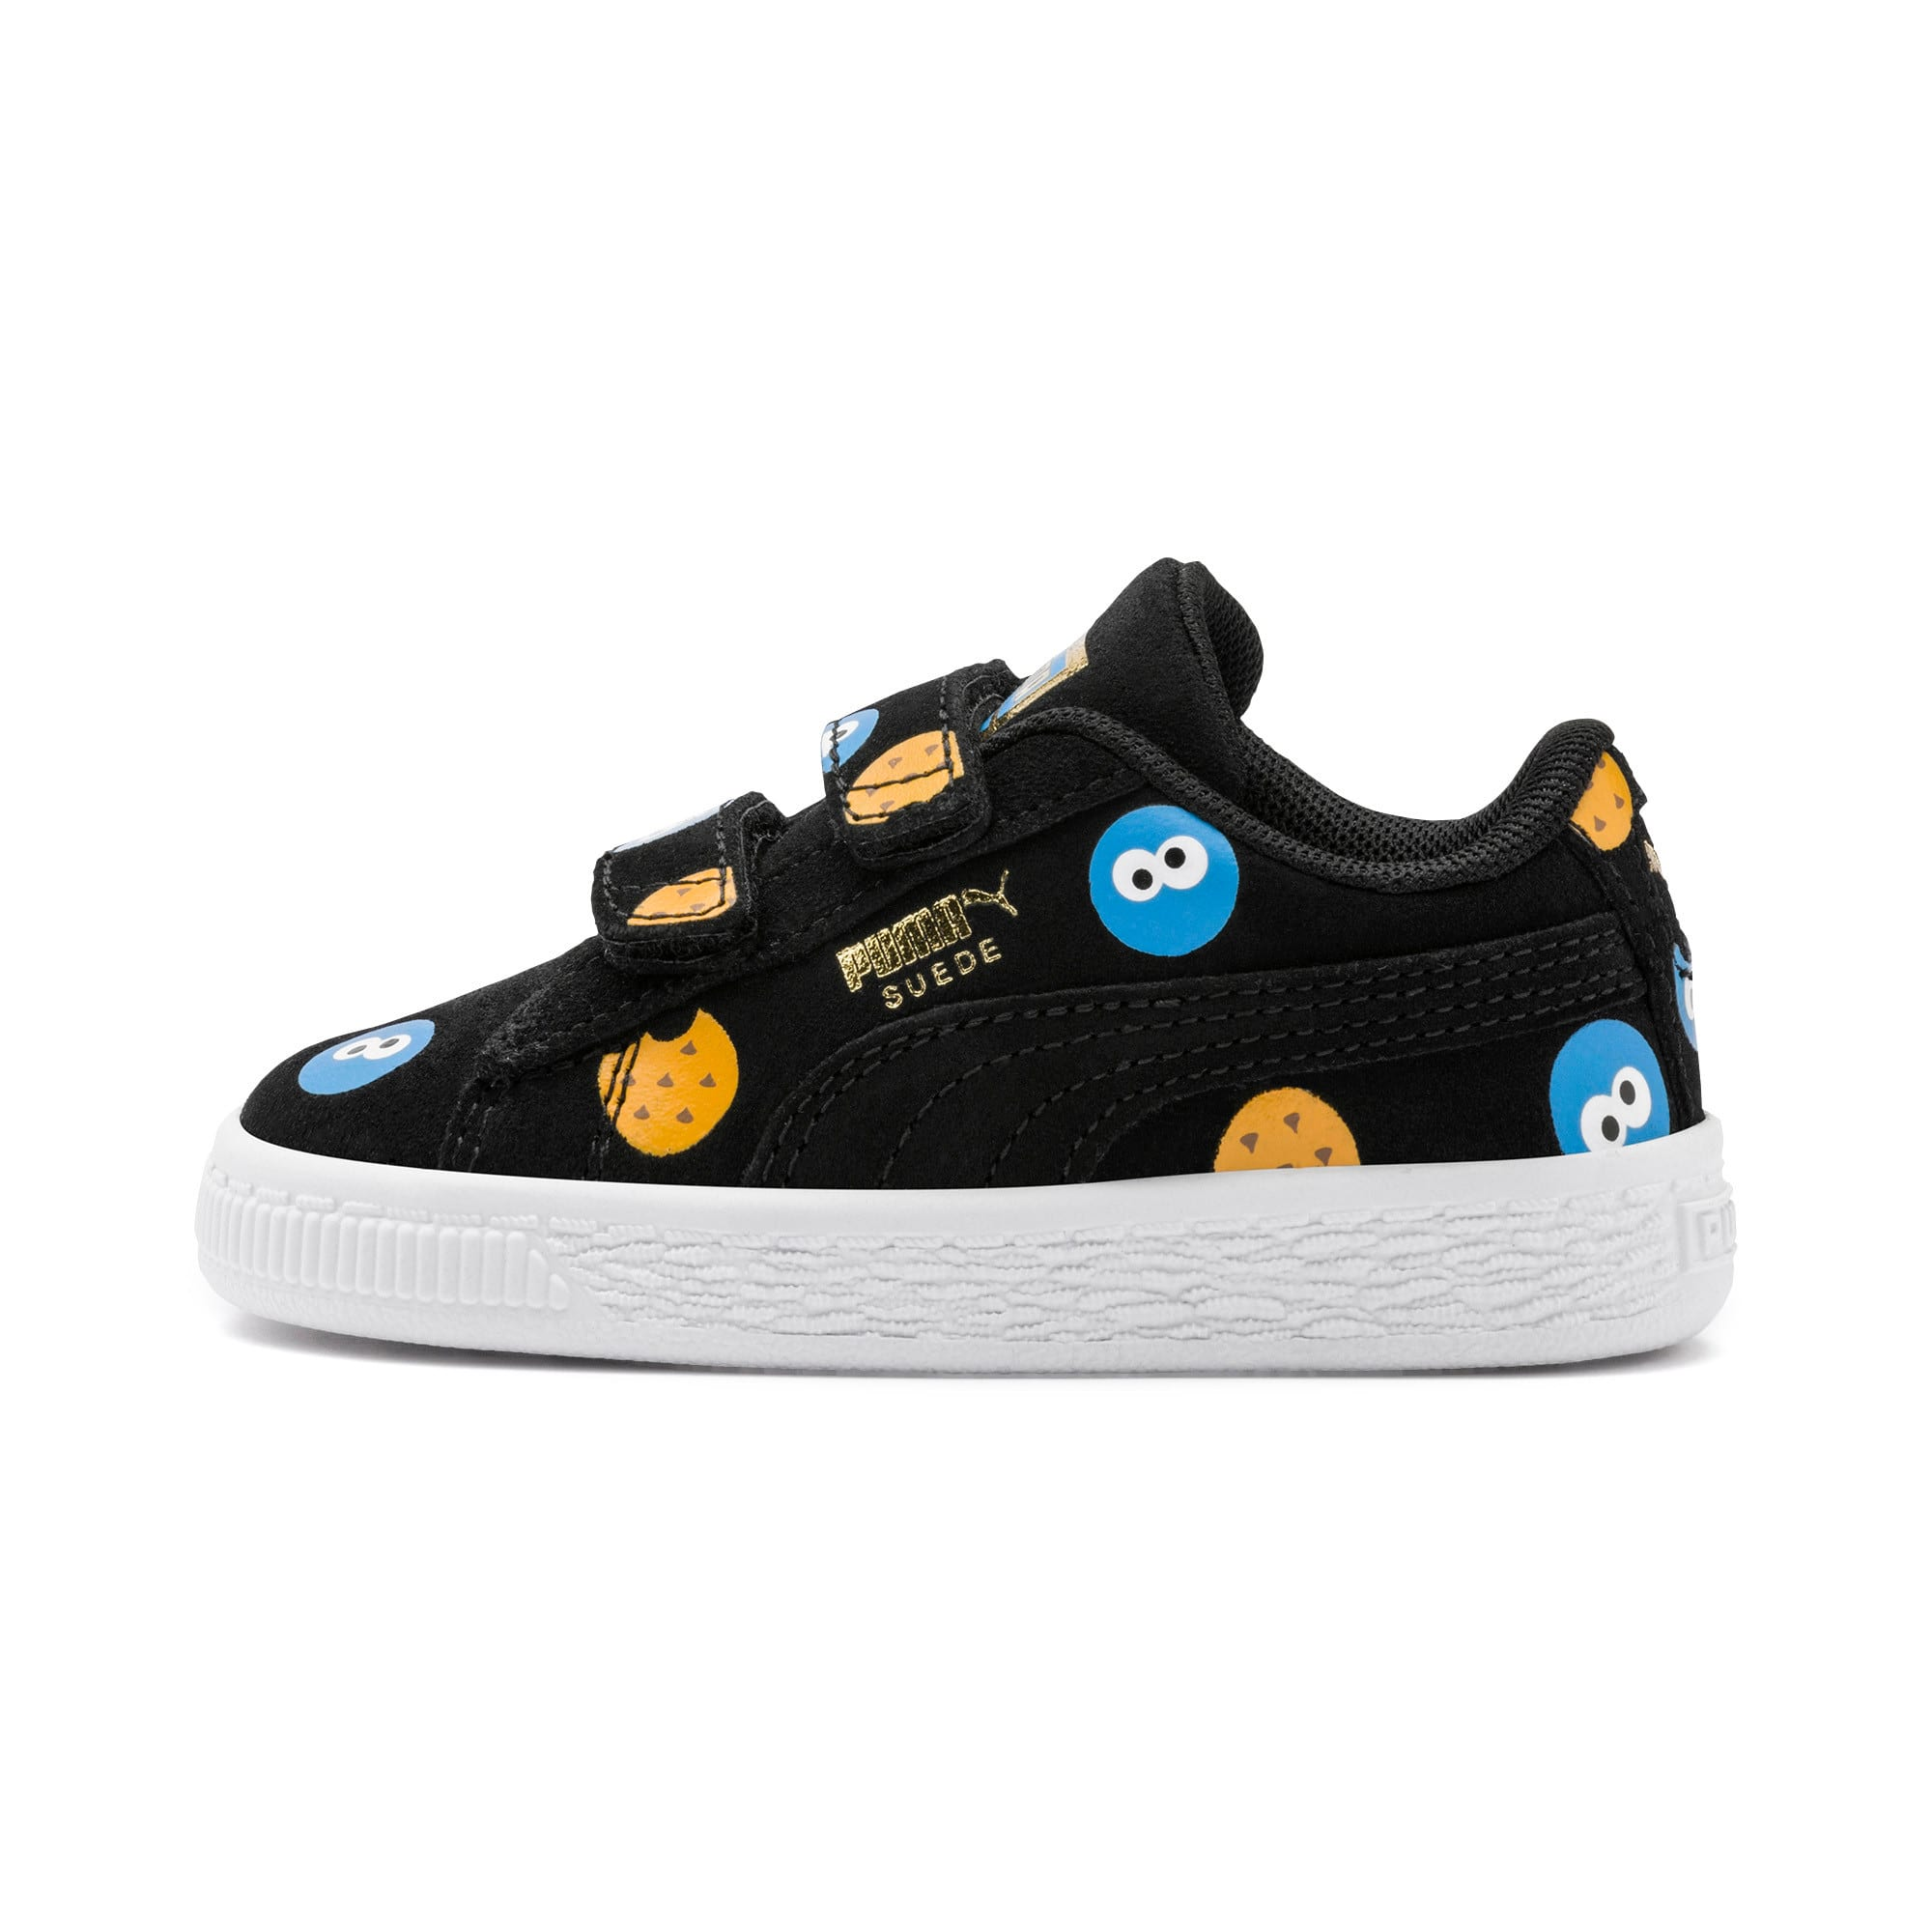 cheaper f8888 6deb2 PUMA x SESAME STREET 50 Suede Badge Toddler Shoes